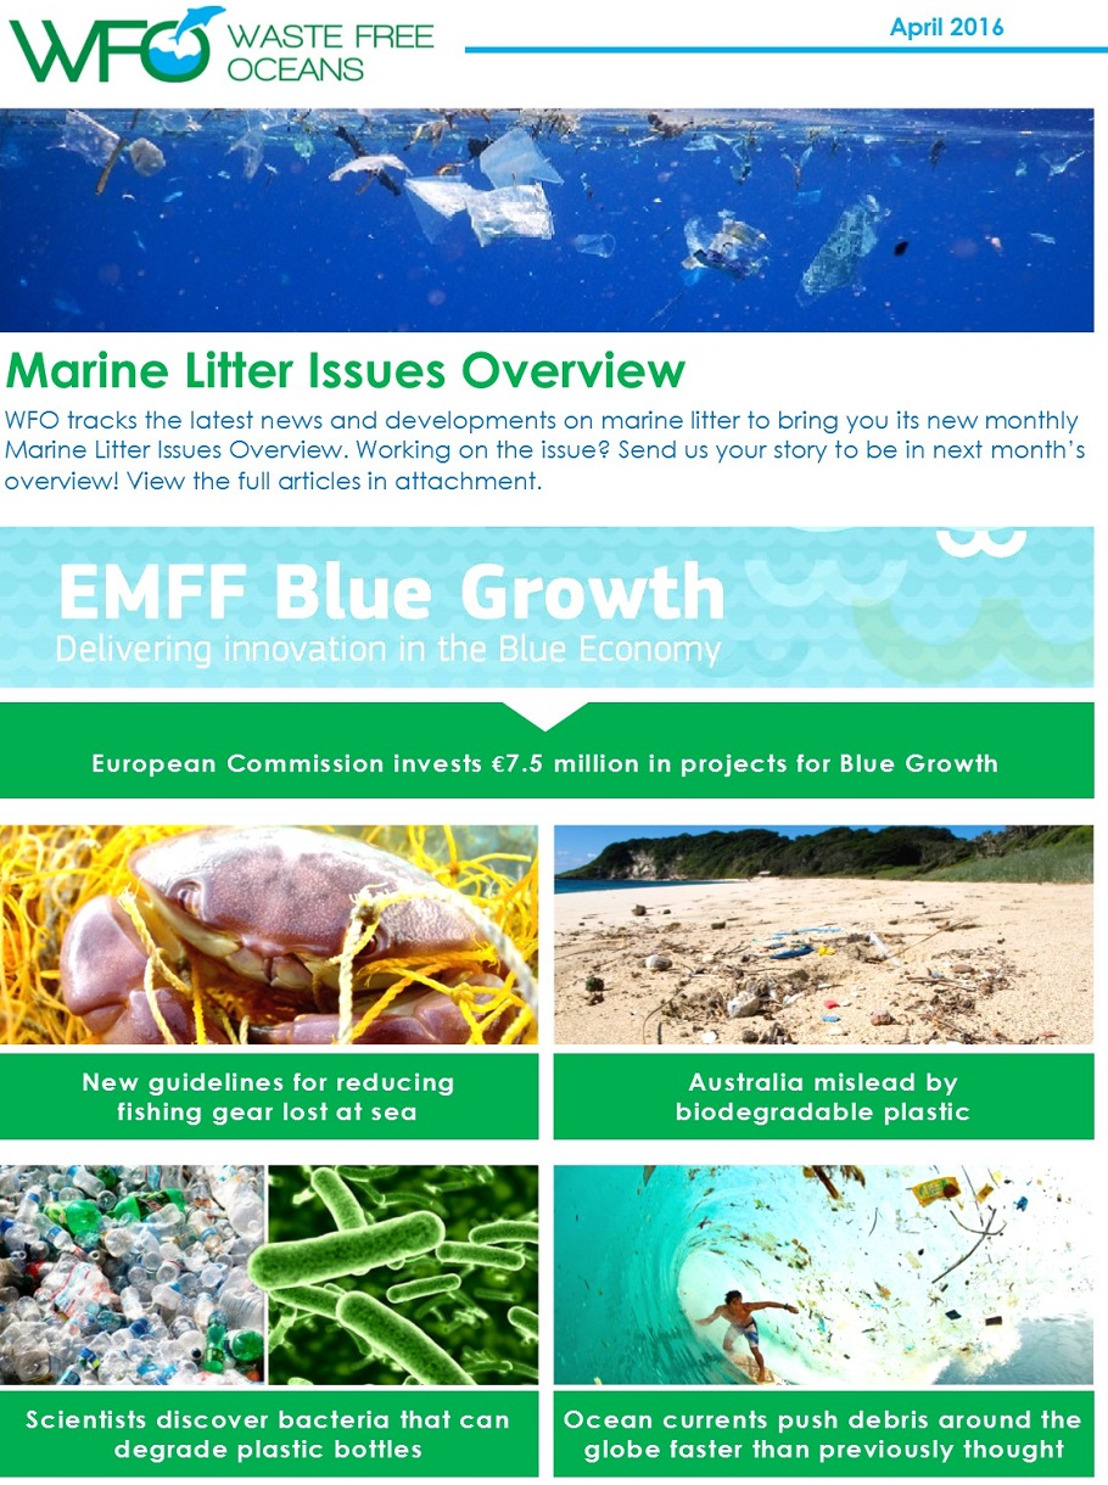 WFO Marine Litter Issues Overview - April 2016